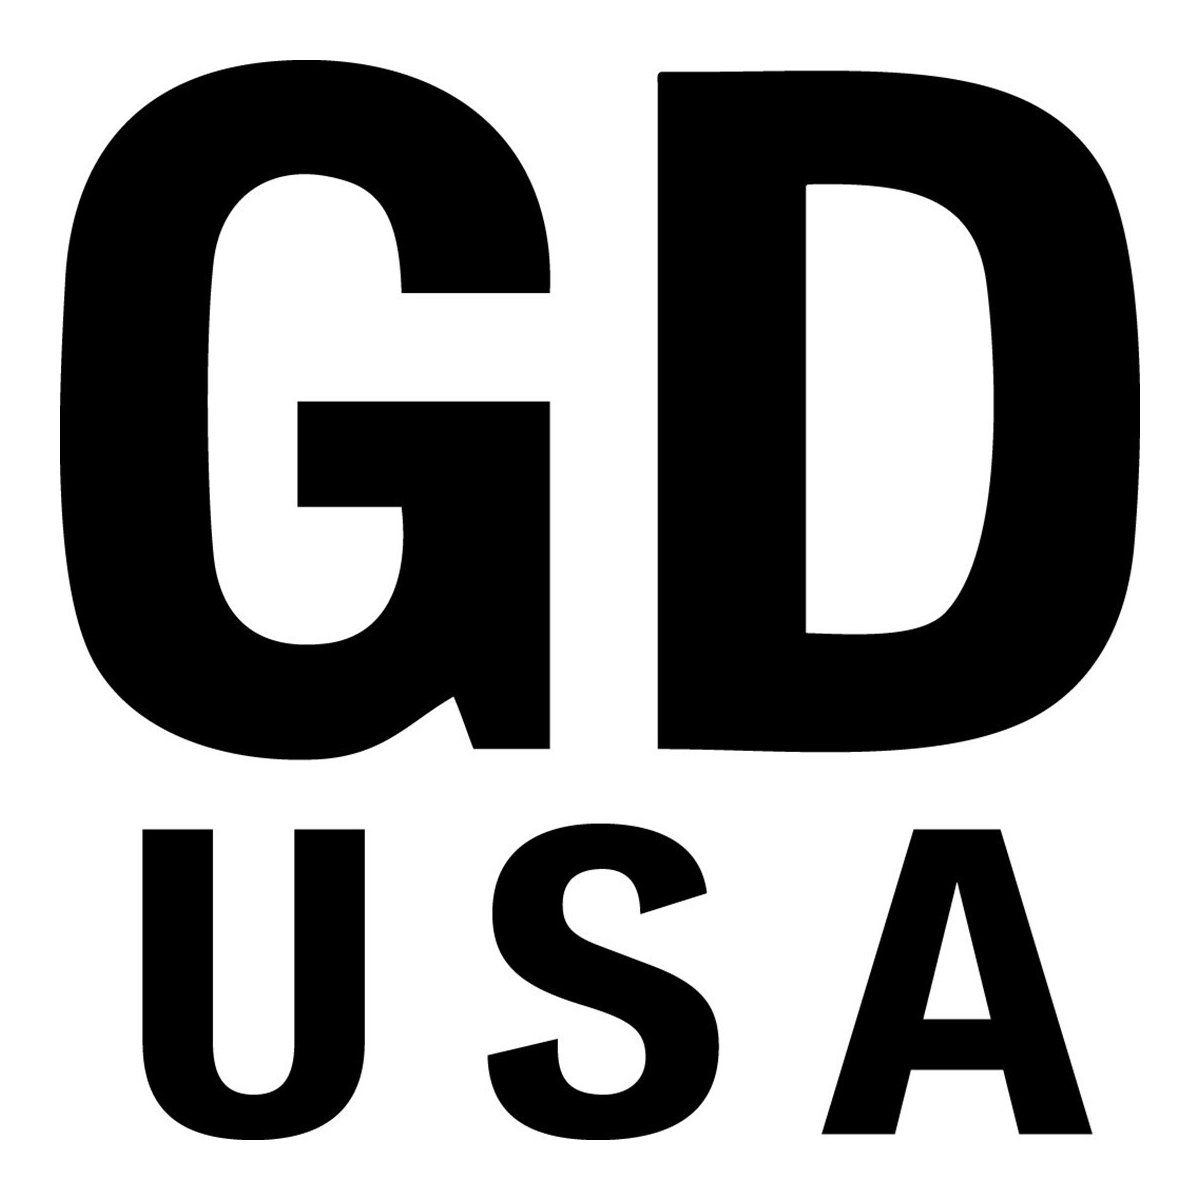 GDUSA American Inhouse Design Awards 2020